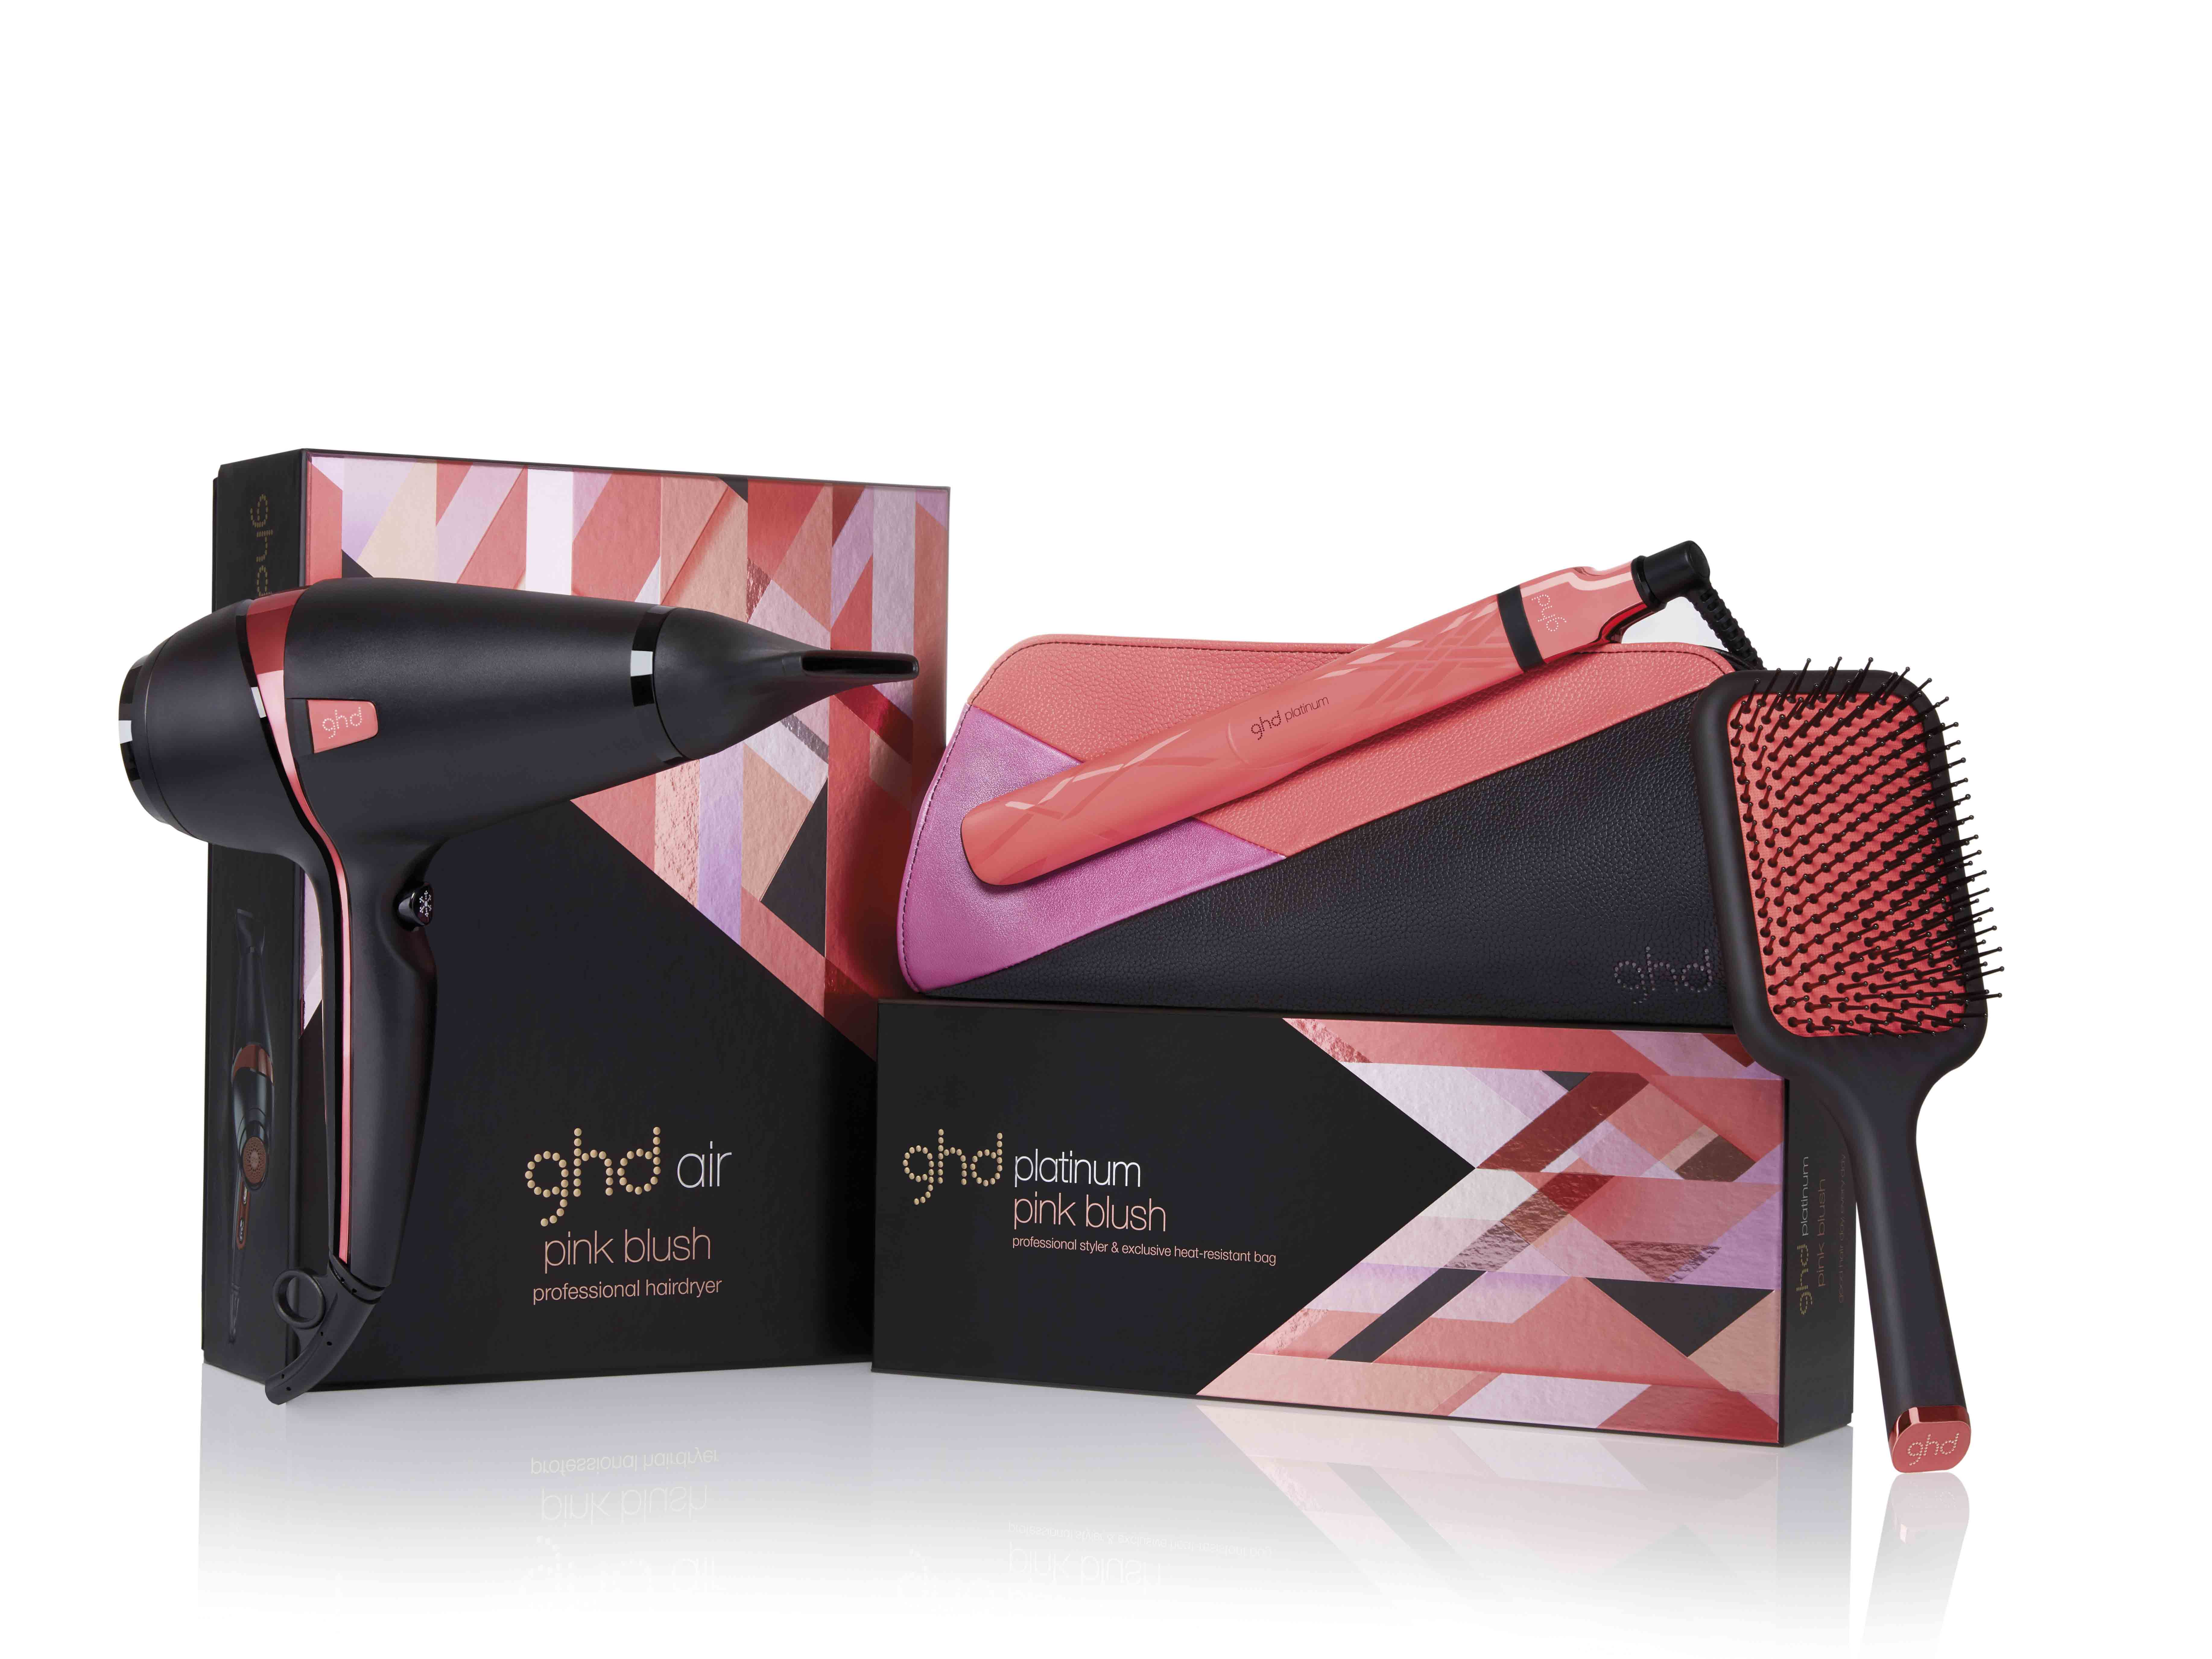 ghd pink blush air, ghd pink blush platinum, ghd pink blush paddle brush